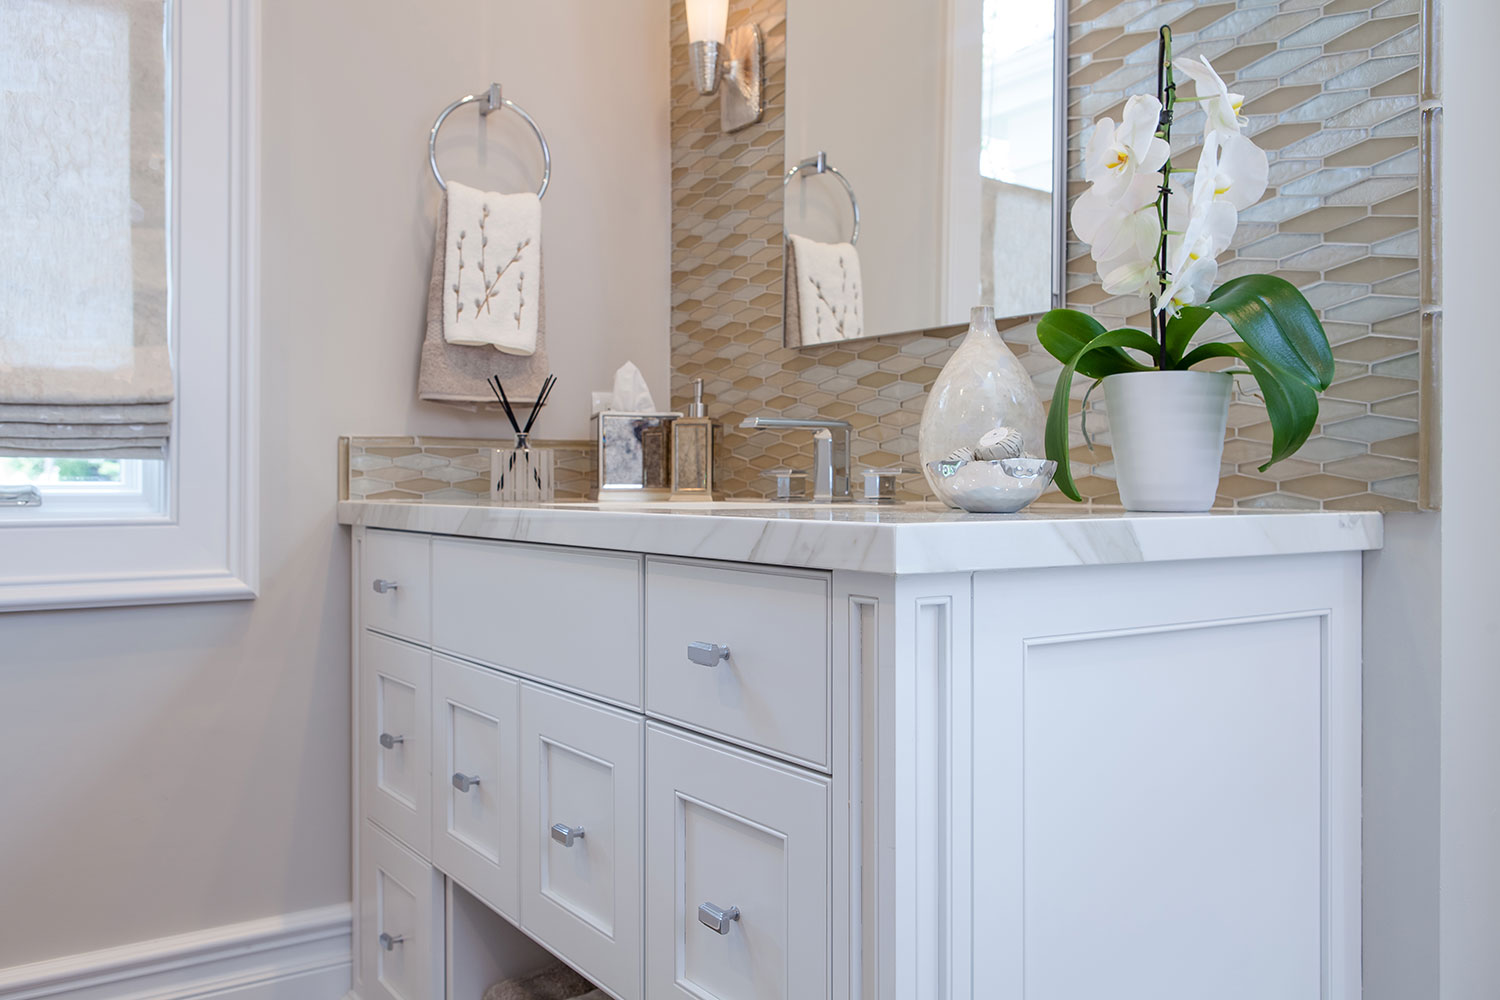 Square Knobs on Recessed Panel Cabinets